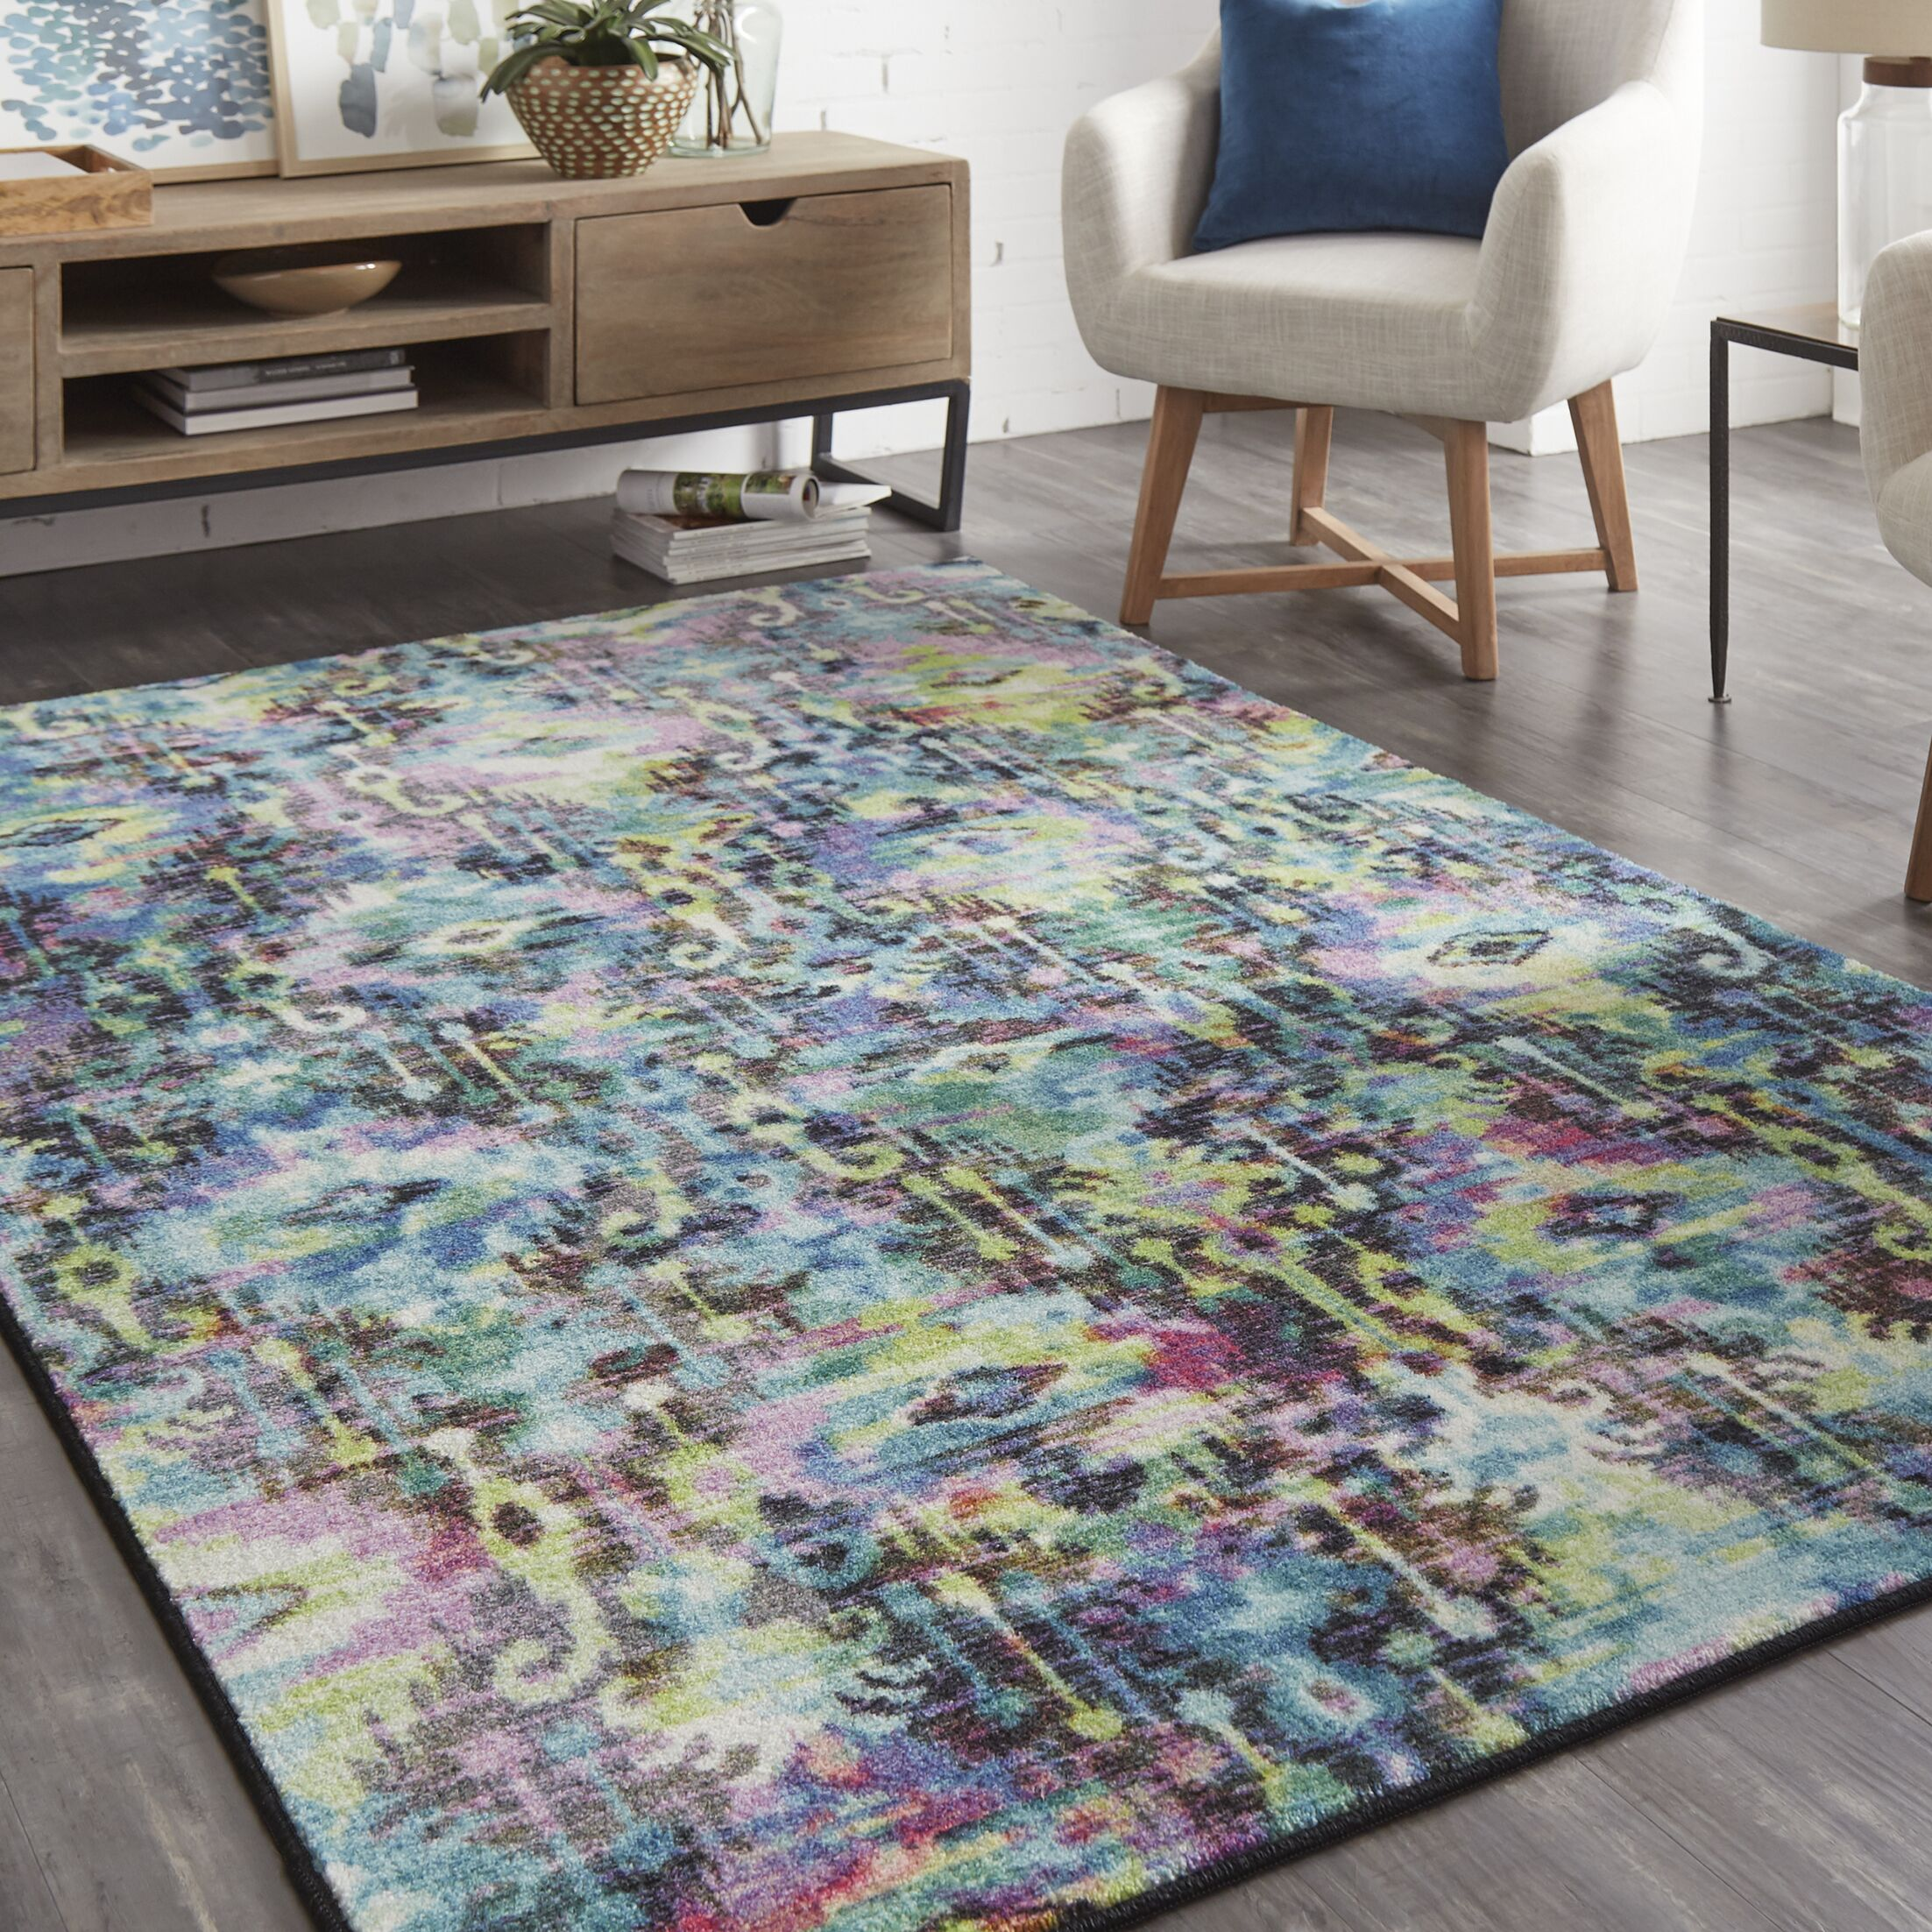 Locher Blue/Green Area Rug Rug Size: Rectangle 5' x 8'